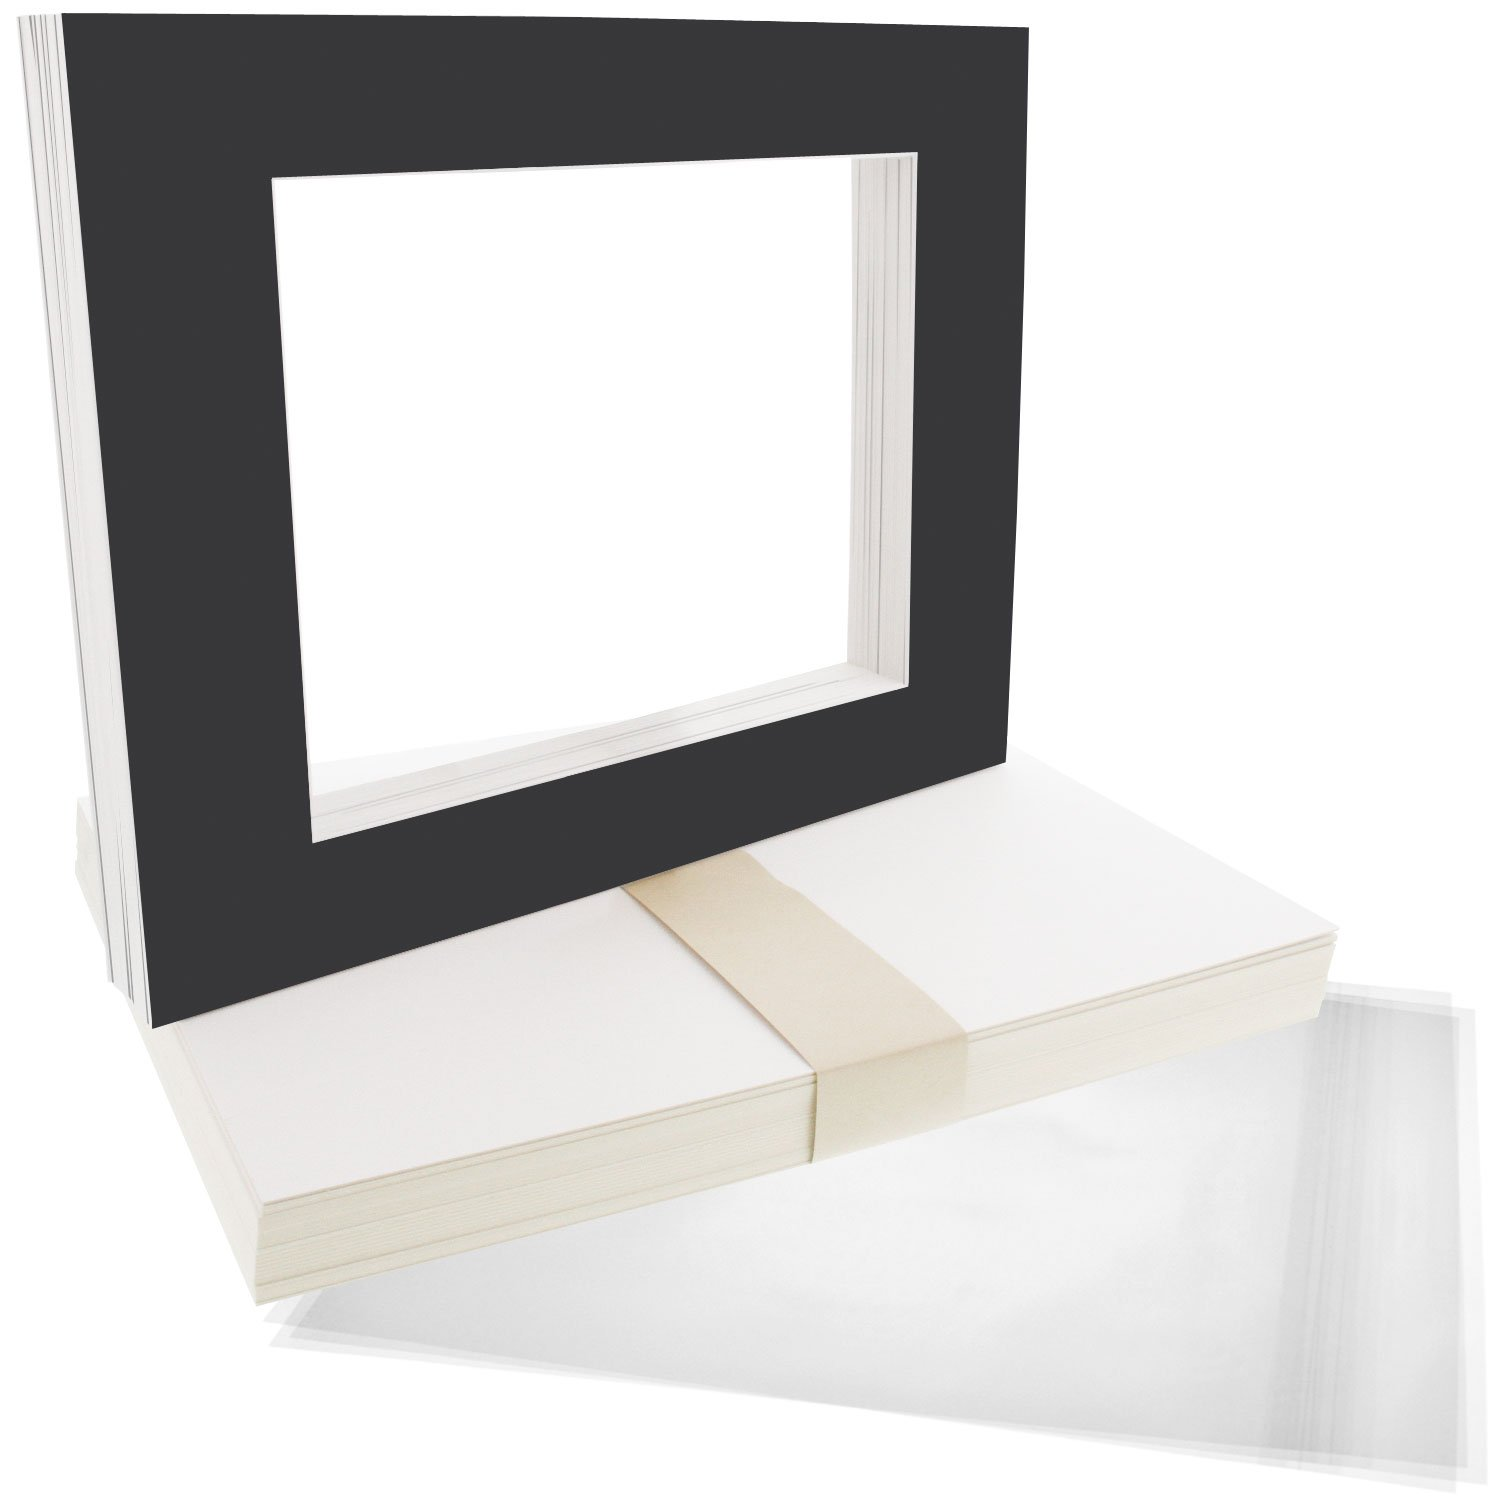 US Art Supply Art Mats Acid-Free Pre-Cut 11x14 Black Picture Mat Matte Sets. Includes a Pack of 25 White Core Bevel Cut Mattes for 8x10 Photos, Pack of 25 Backers & 25 Clear Sleeve Bags